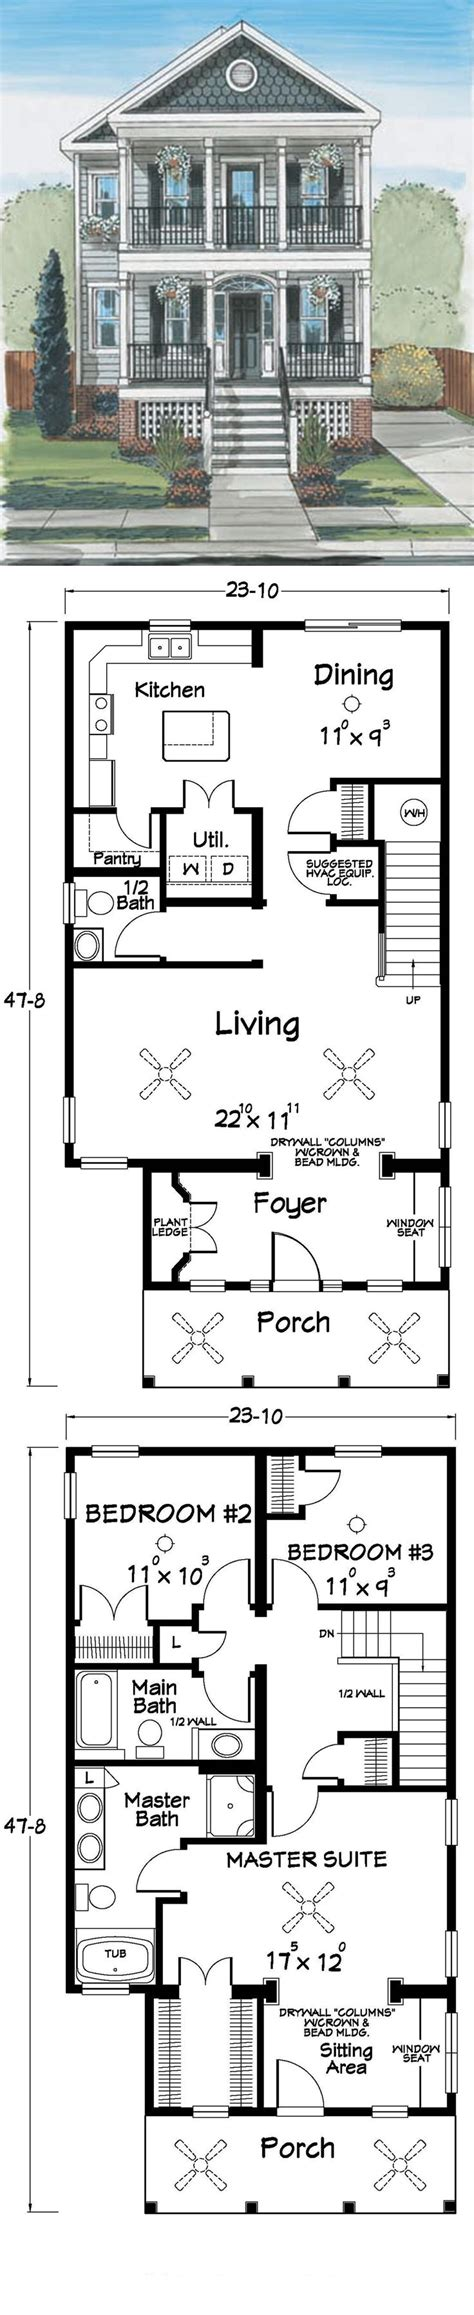 house floor plan layouts best 25 sims3 house ideas on sims house sims